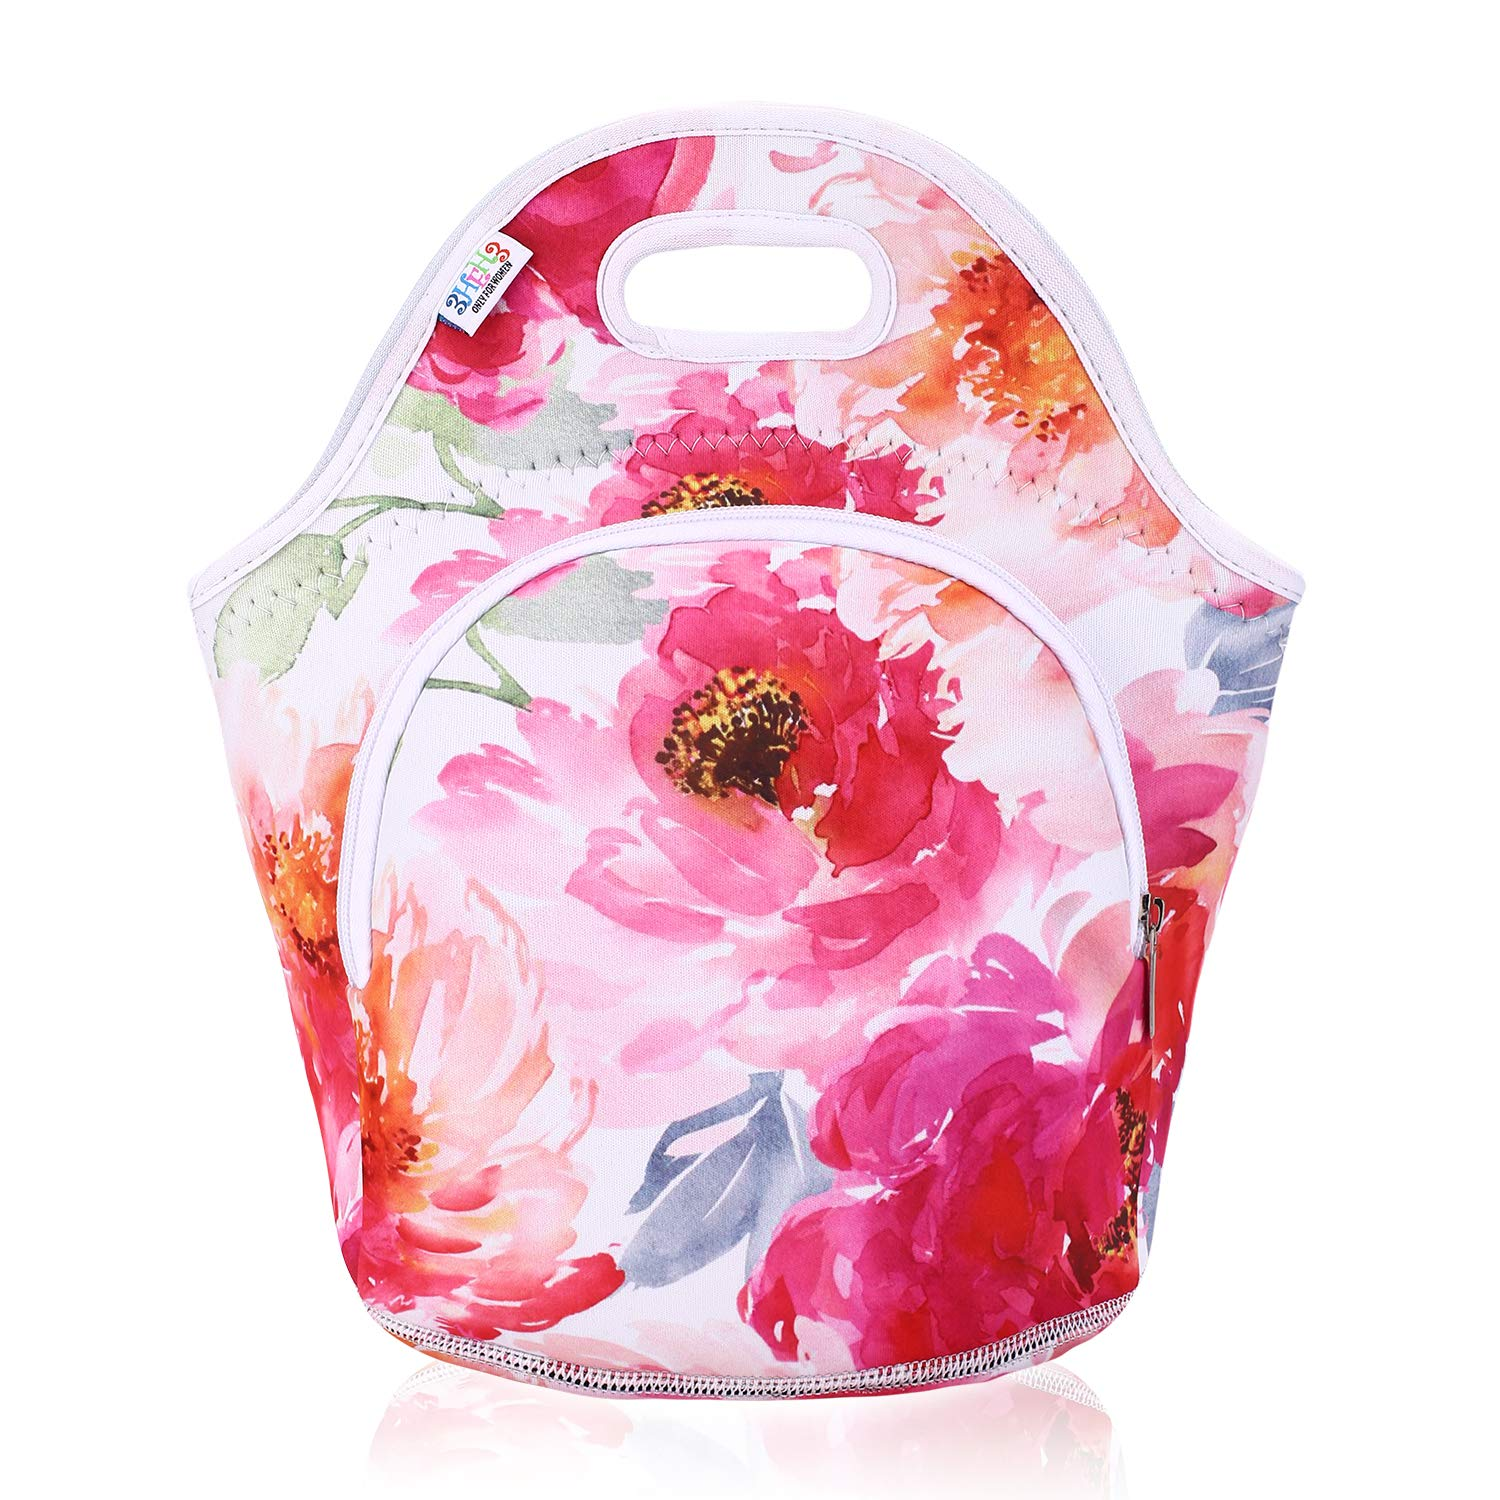 Lunch Bag for Women Girls 3HEH3 fashion Insulated Neoprene Reusable Soft Portable Lunch Tote Outside Pocket for Work School Outdoor Travel Shopping Flowers